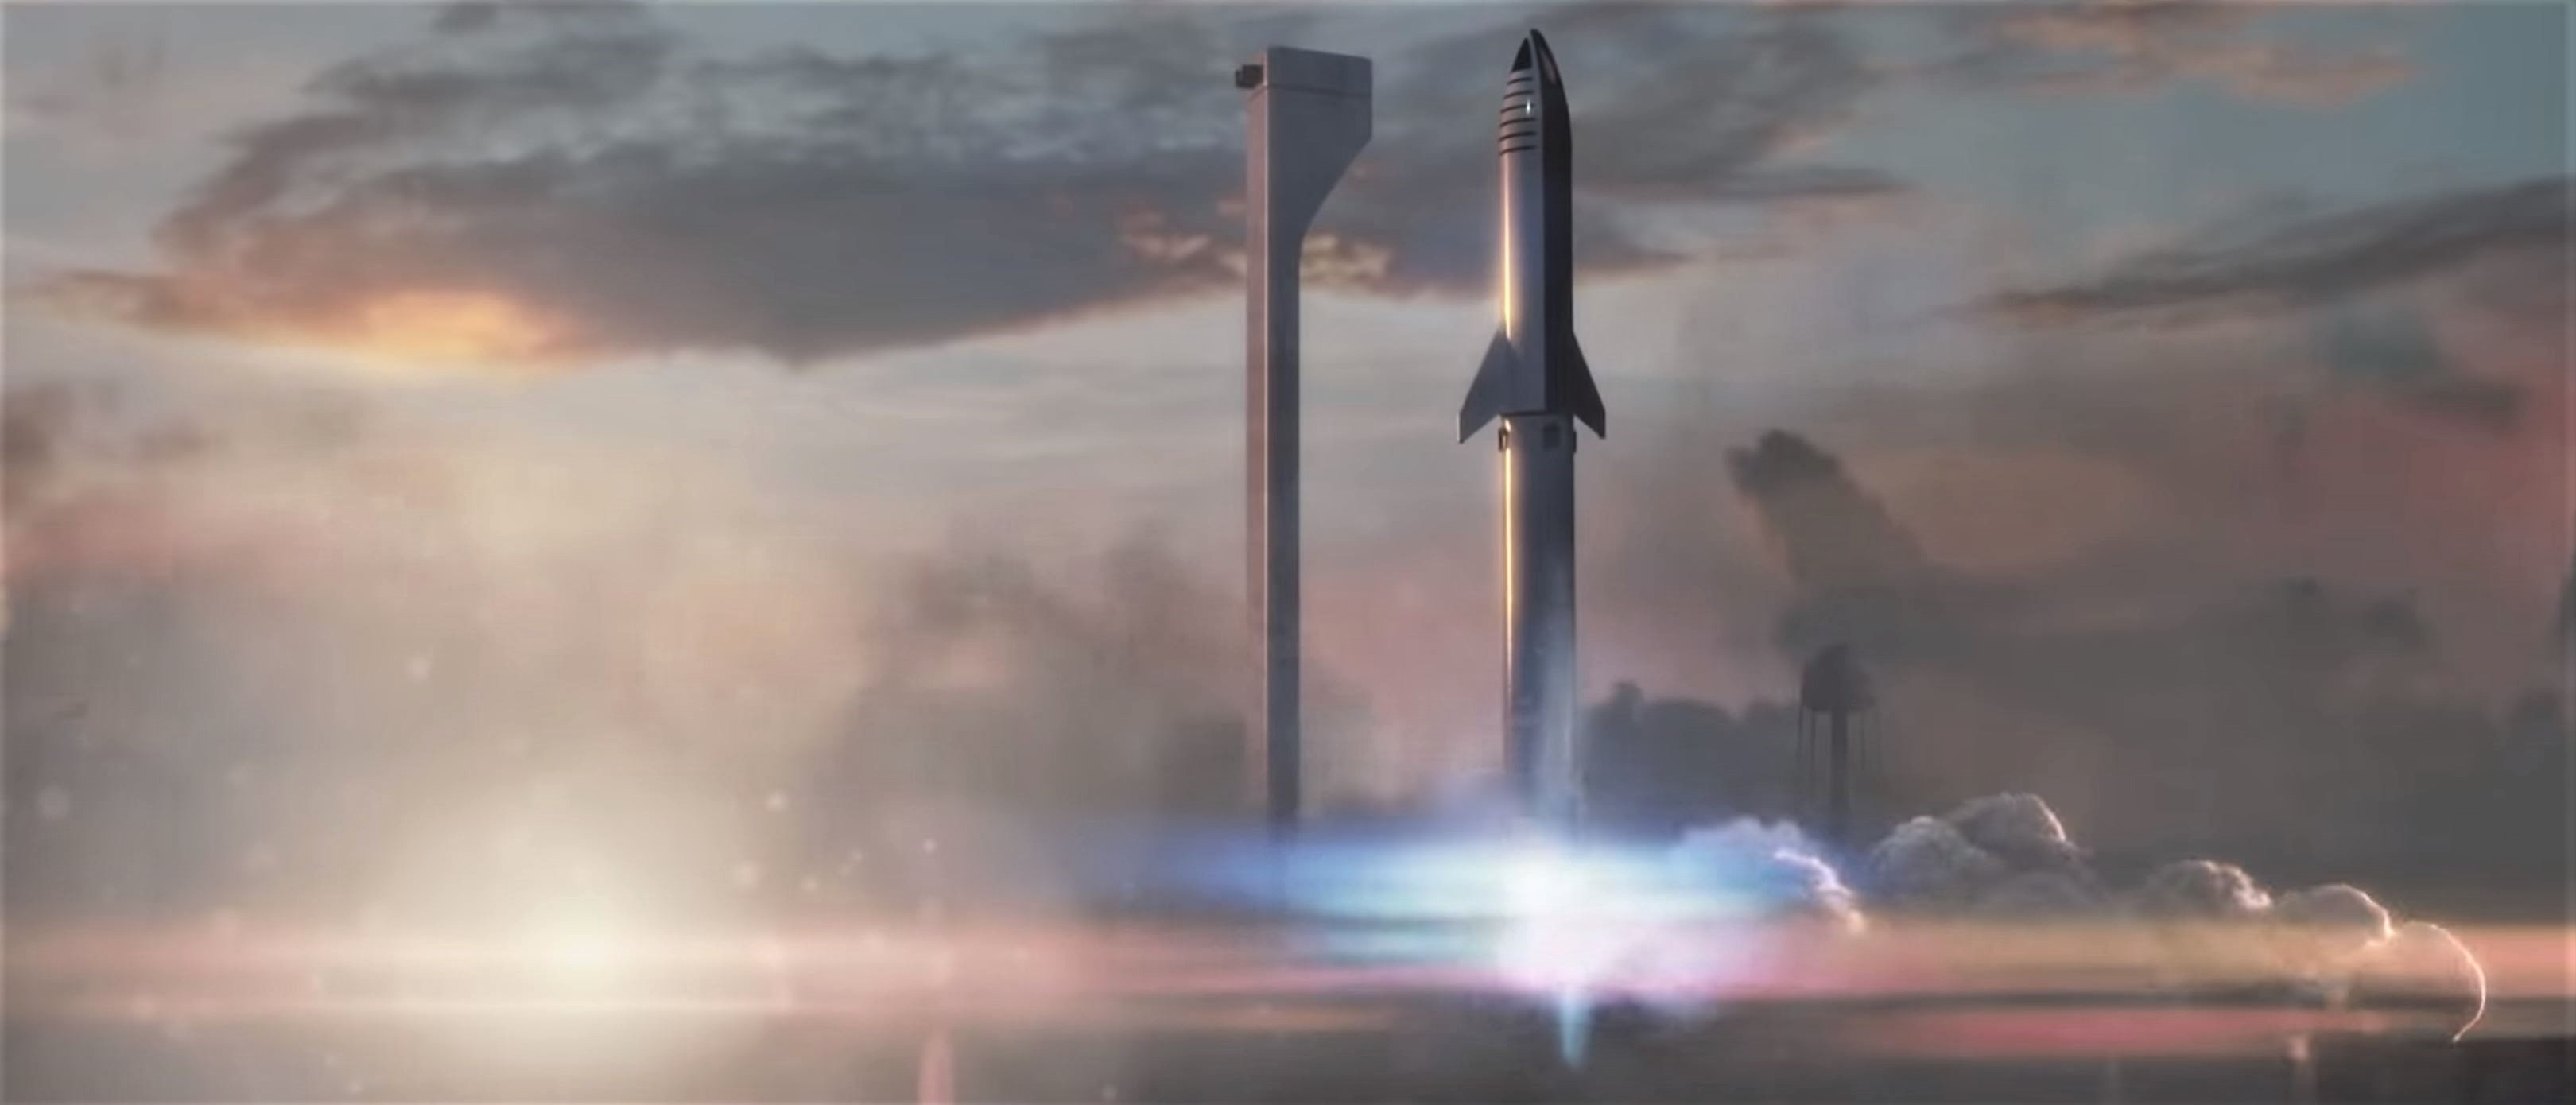 Elon Musk pegs SpaceX BFR program at $5B as NASA's rocket booster nears $5B in cost overruns